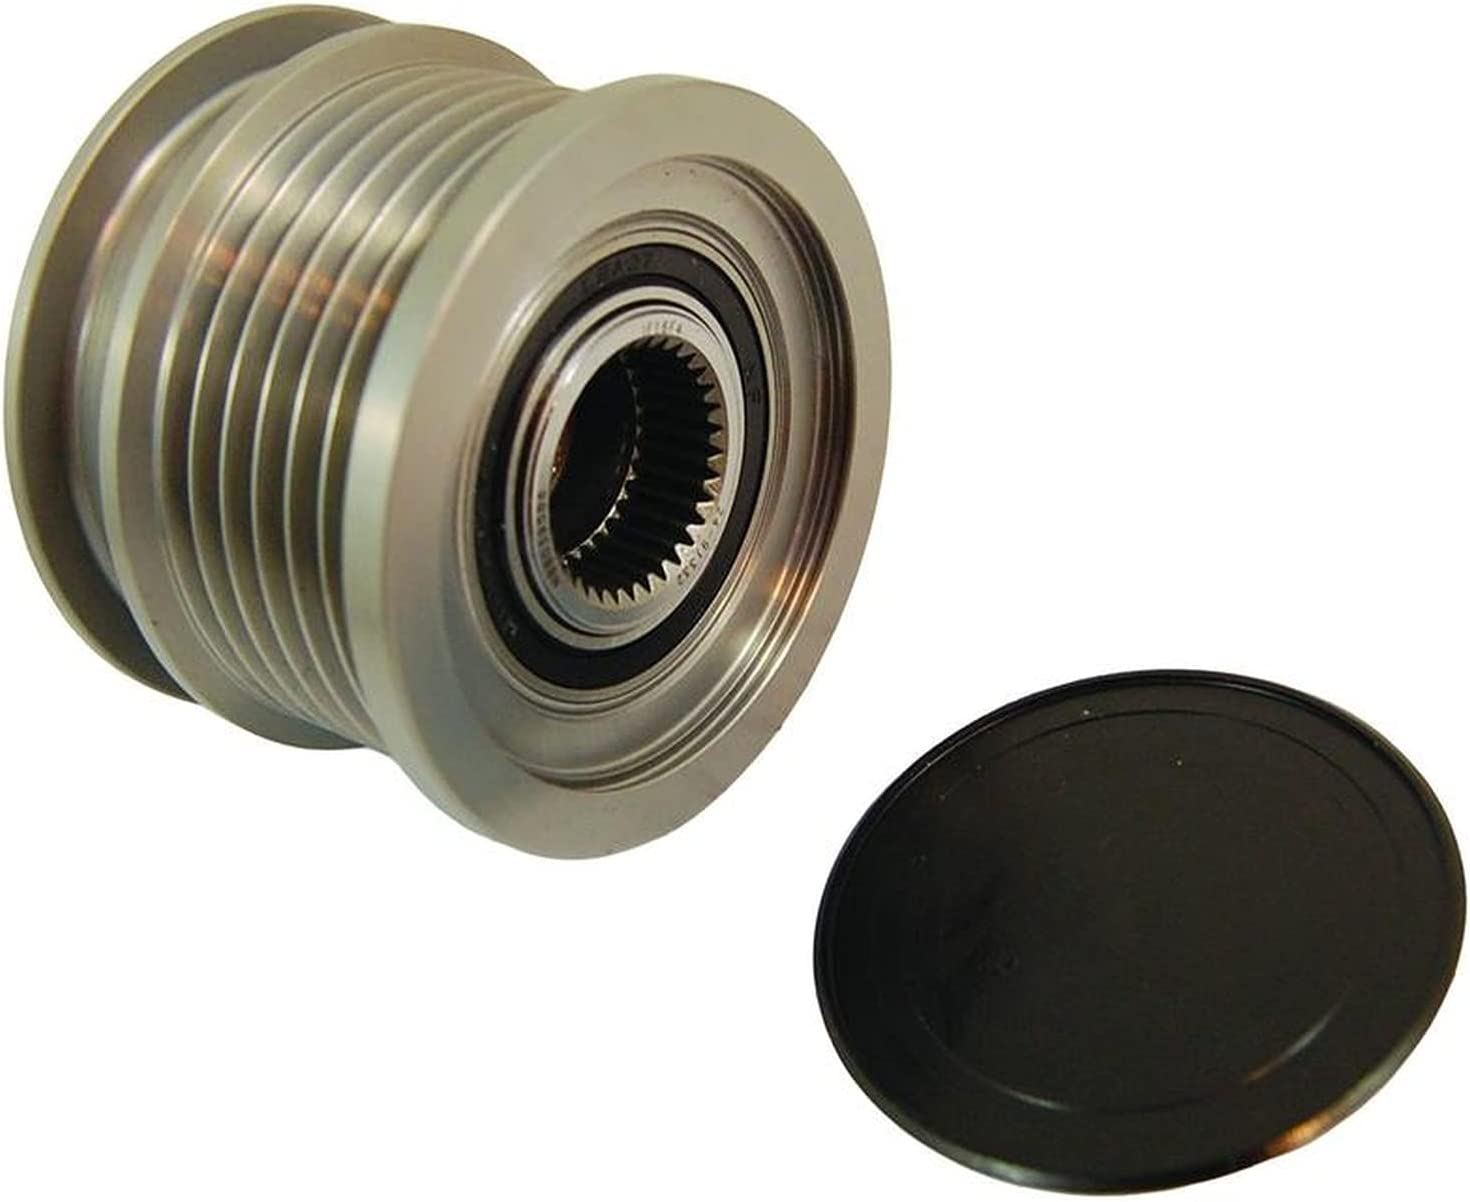 New Clutch Pulley Replacement for Albuquerque Mall Opel 20 DTR 2.0 INSIGNIA Eng.A Fees free!!